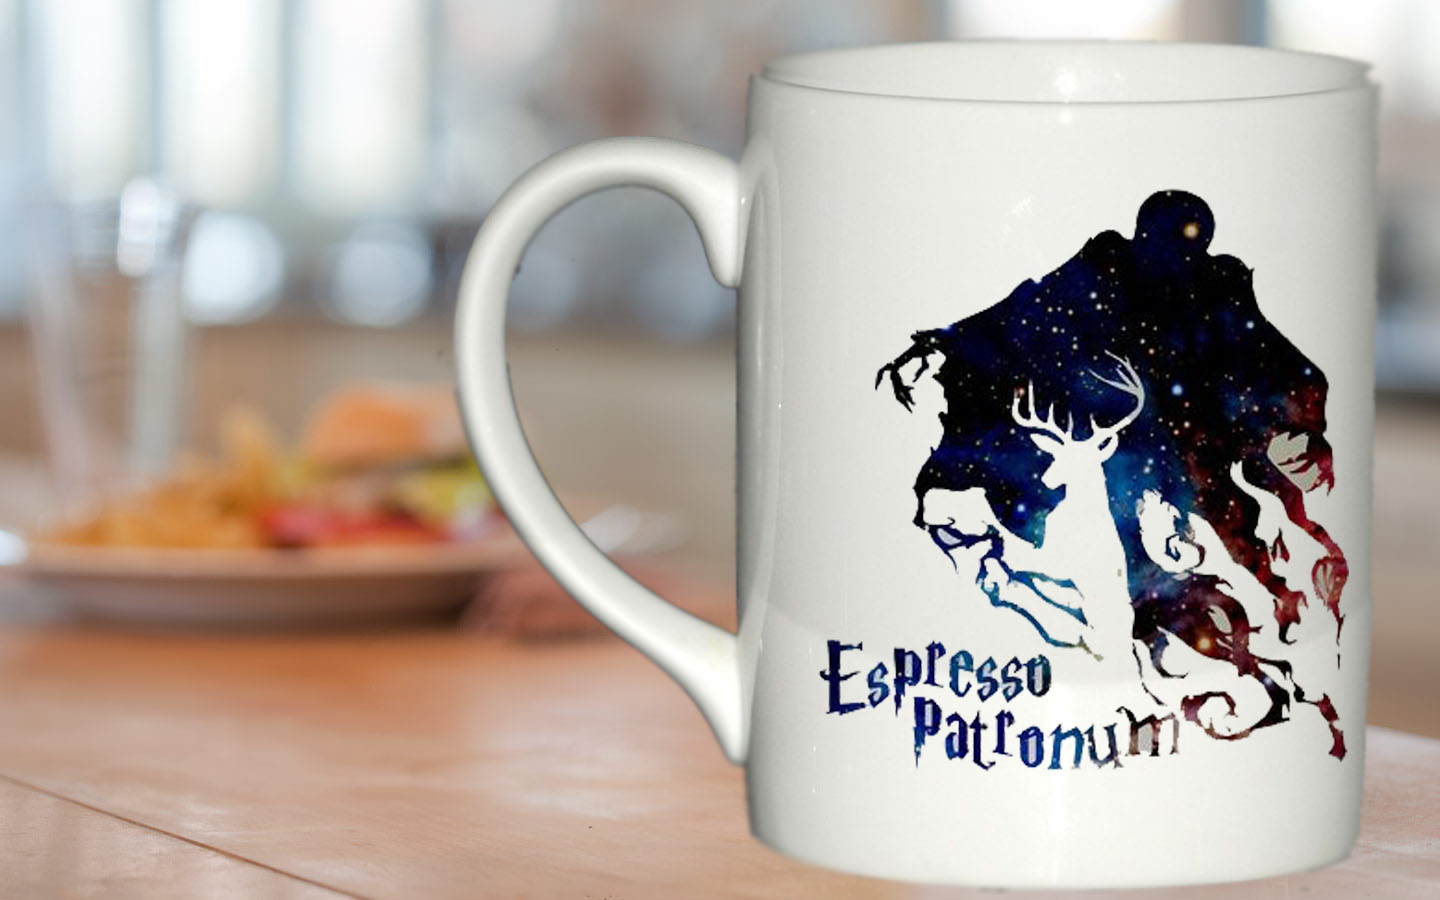 Espresso Patronum Harry Potter In Galaxy Mug